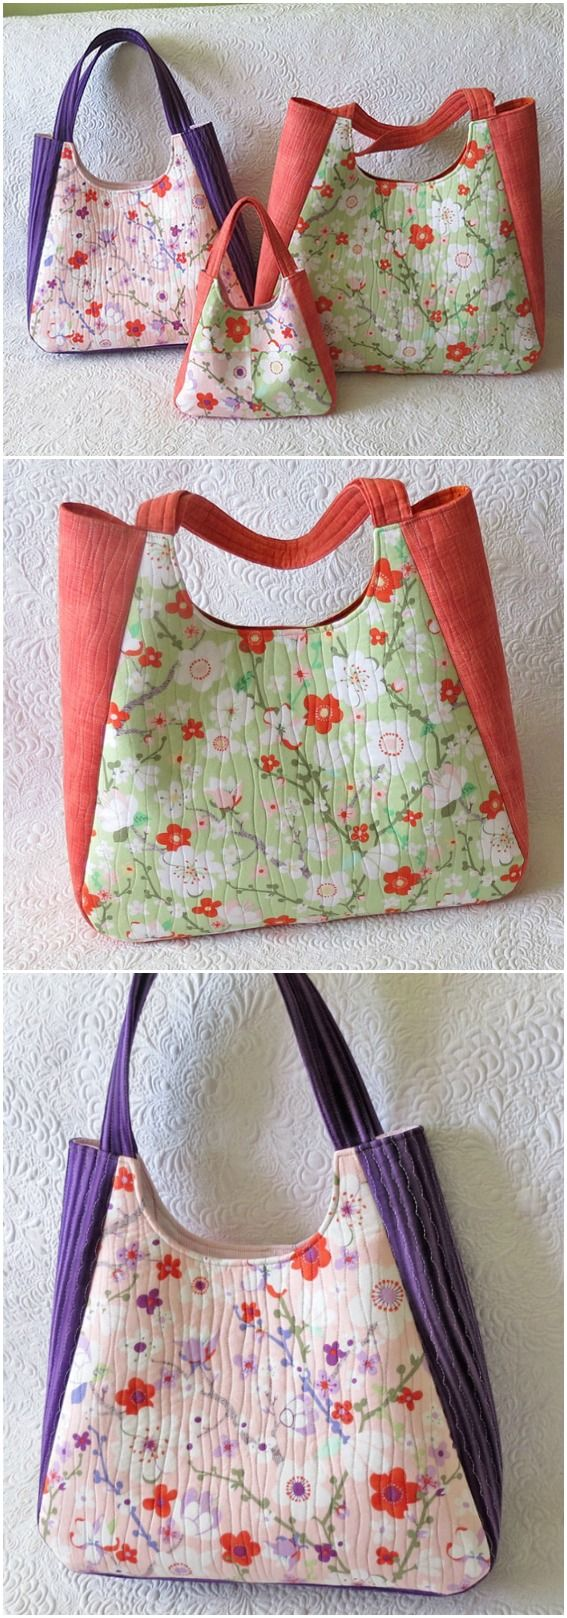 Bag pattern in three sizes:mini (great for little girls), medium (everyday bags) and large bags (lots of uses for this one!)